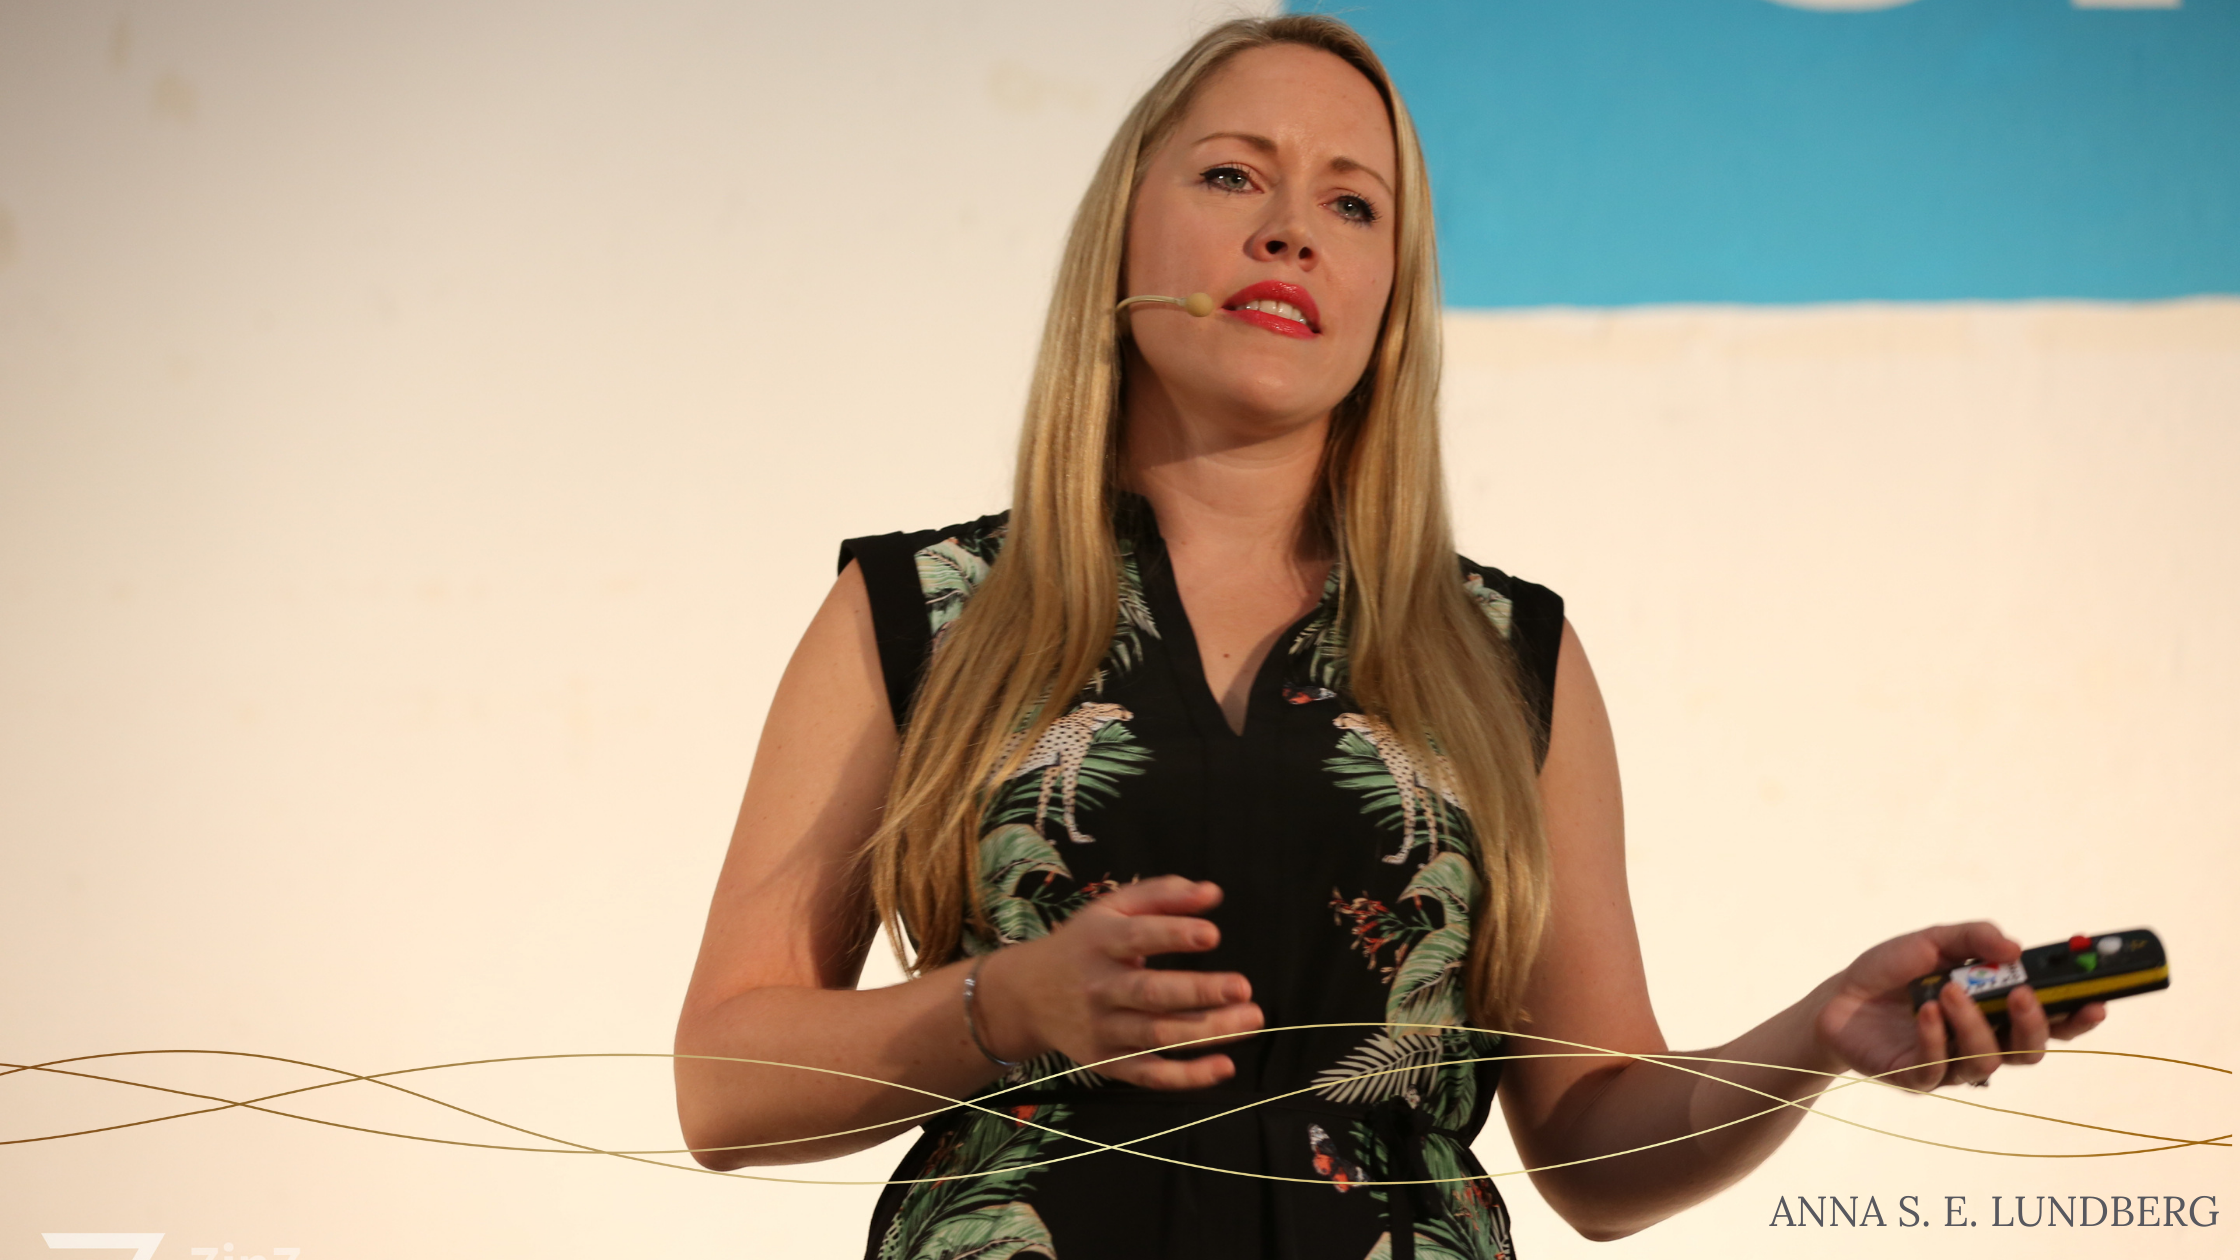 Anna Lundberg speaking on stage at the 7 in 7 digital nomad conference in Barcelona